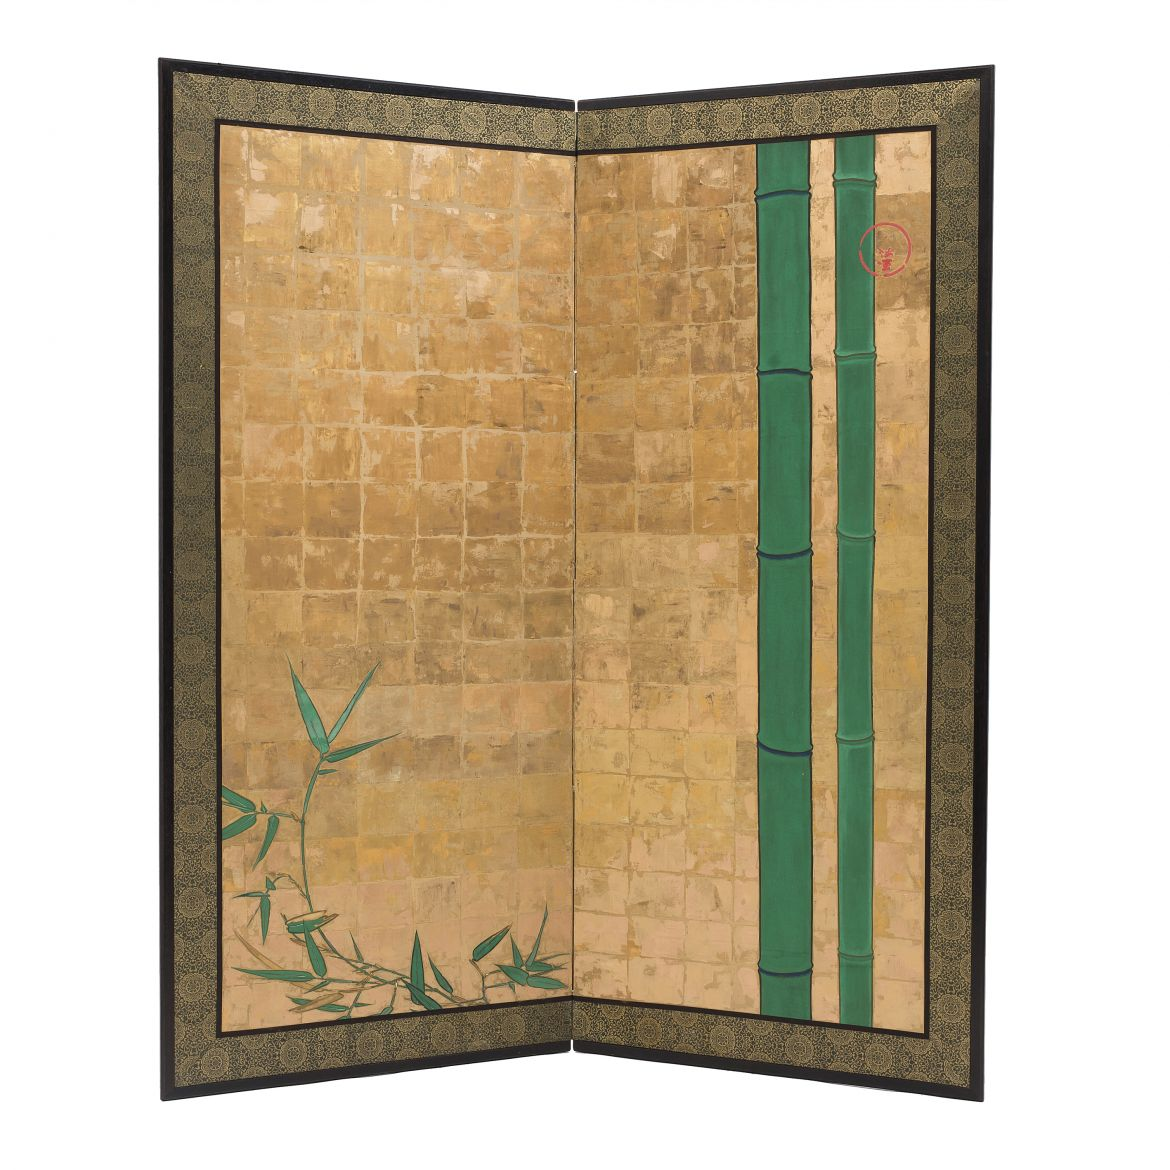 Two Fold Japanese Paper Screen